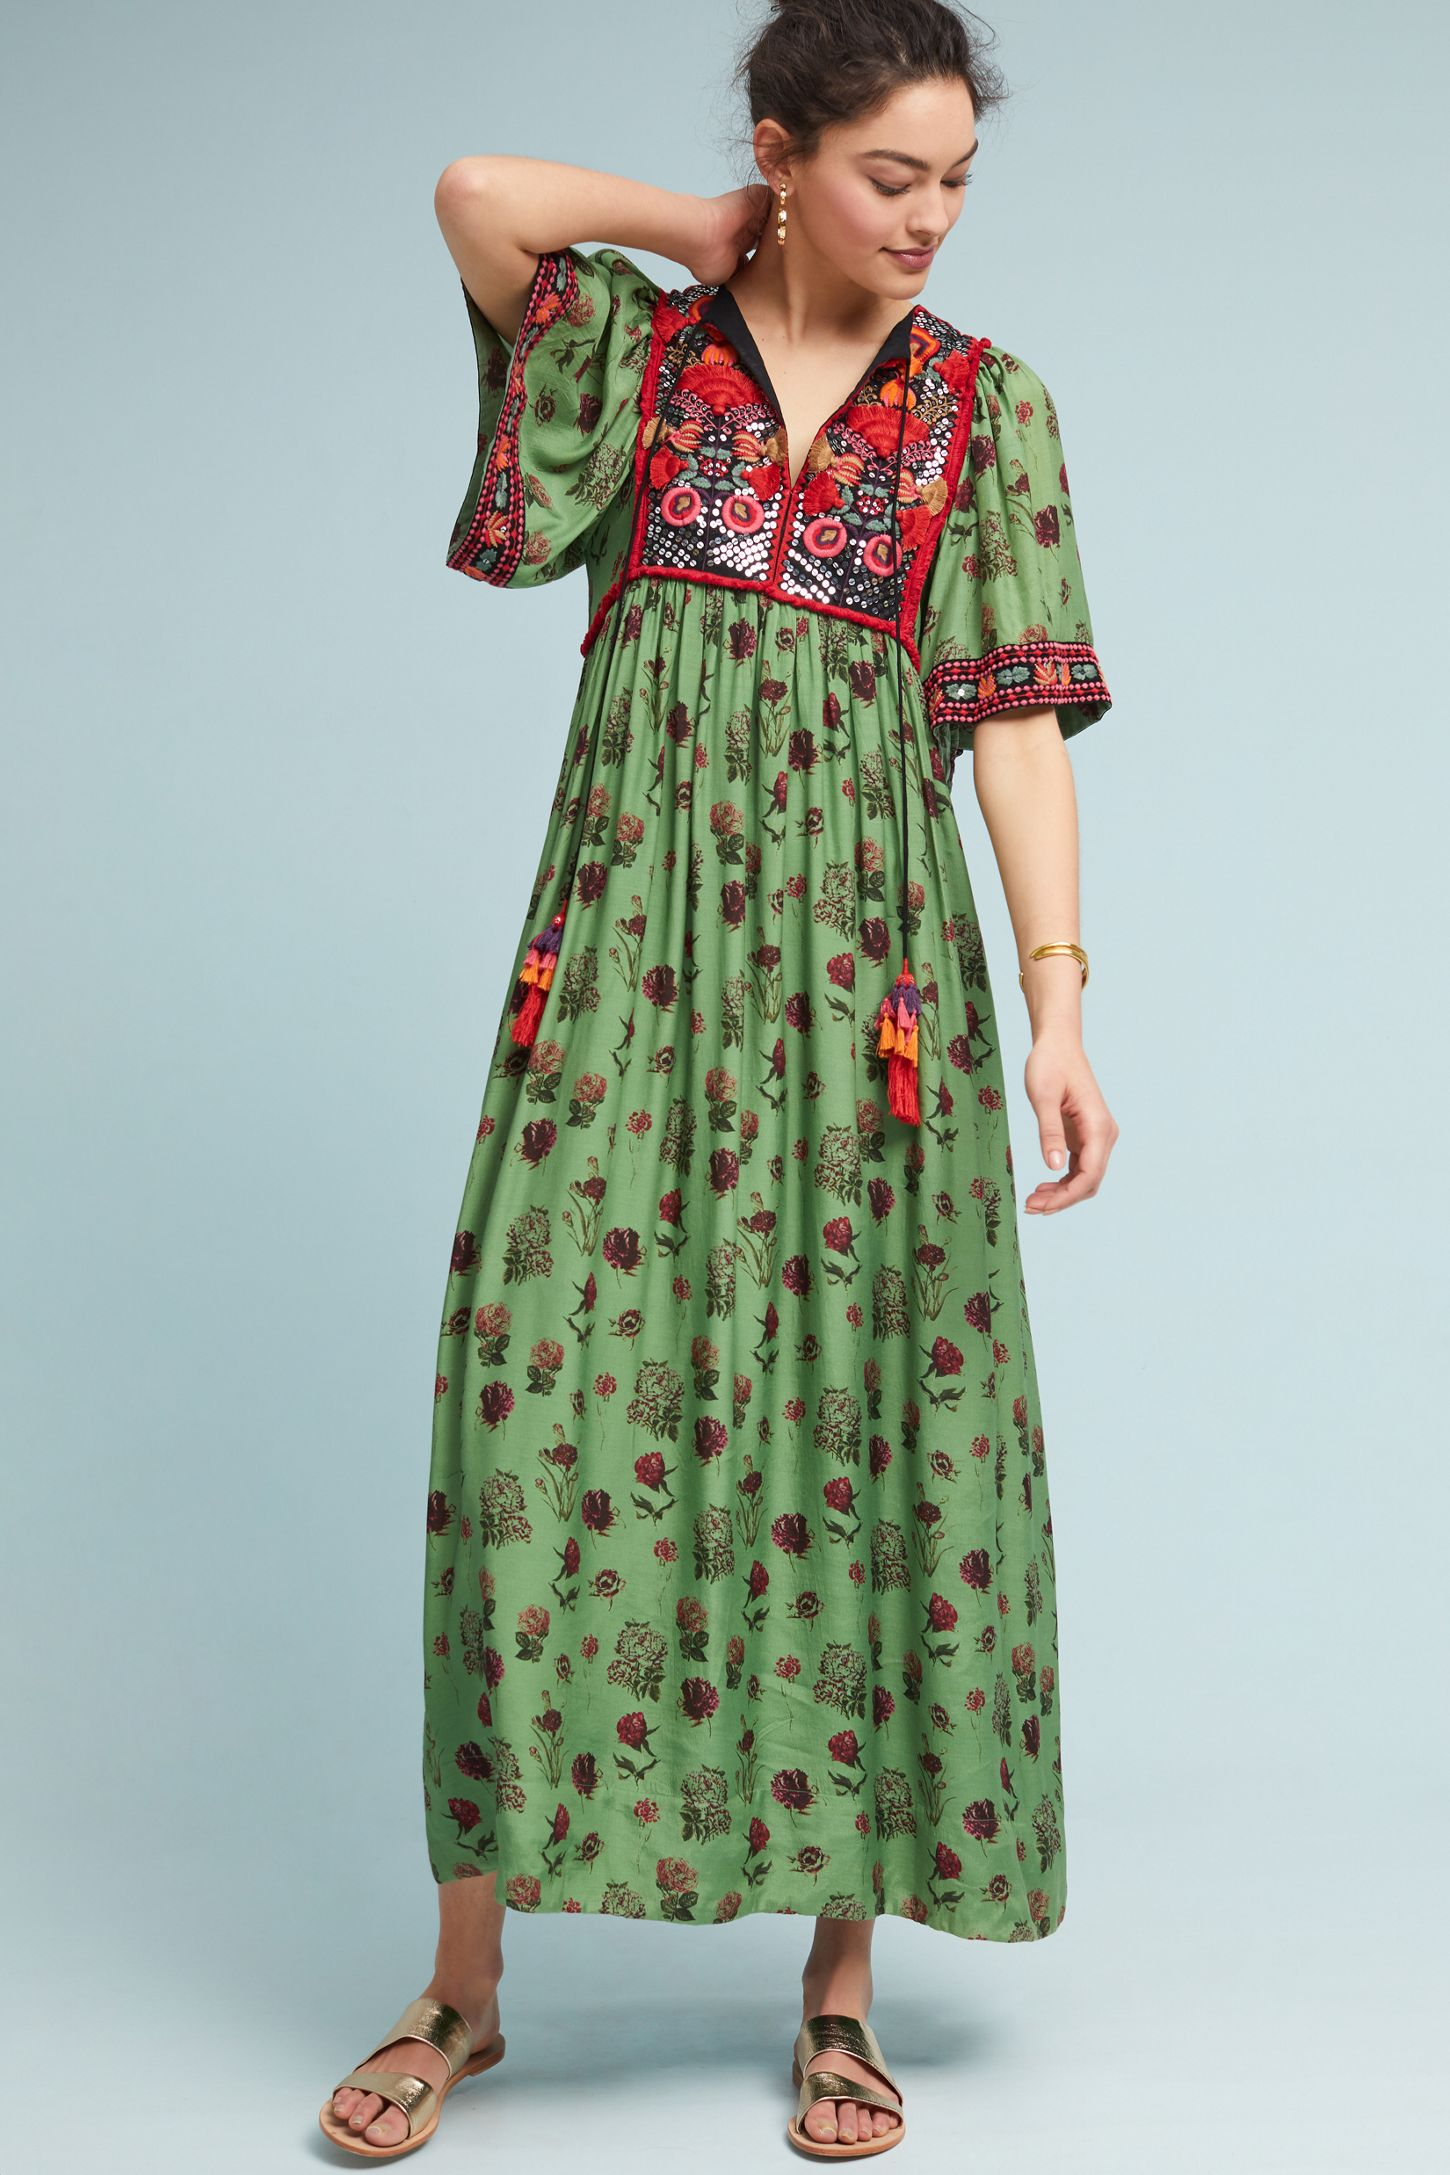 56f2d7f944b5 Basil Embroidered Dress | Anthropologie